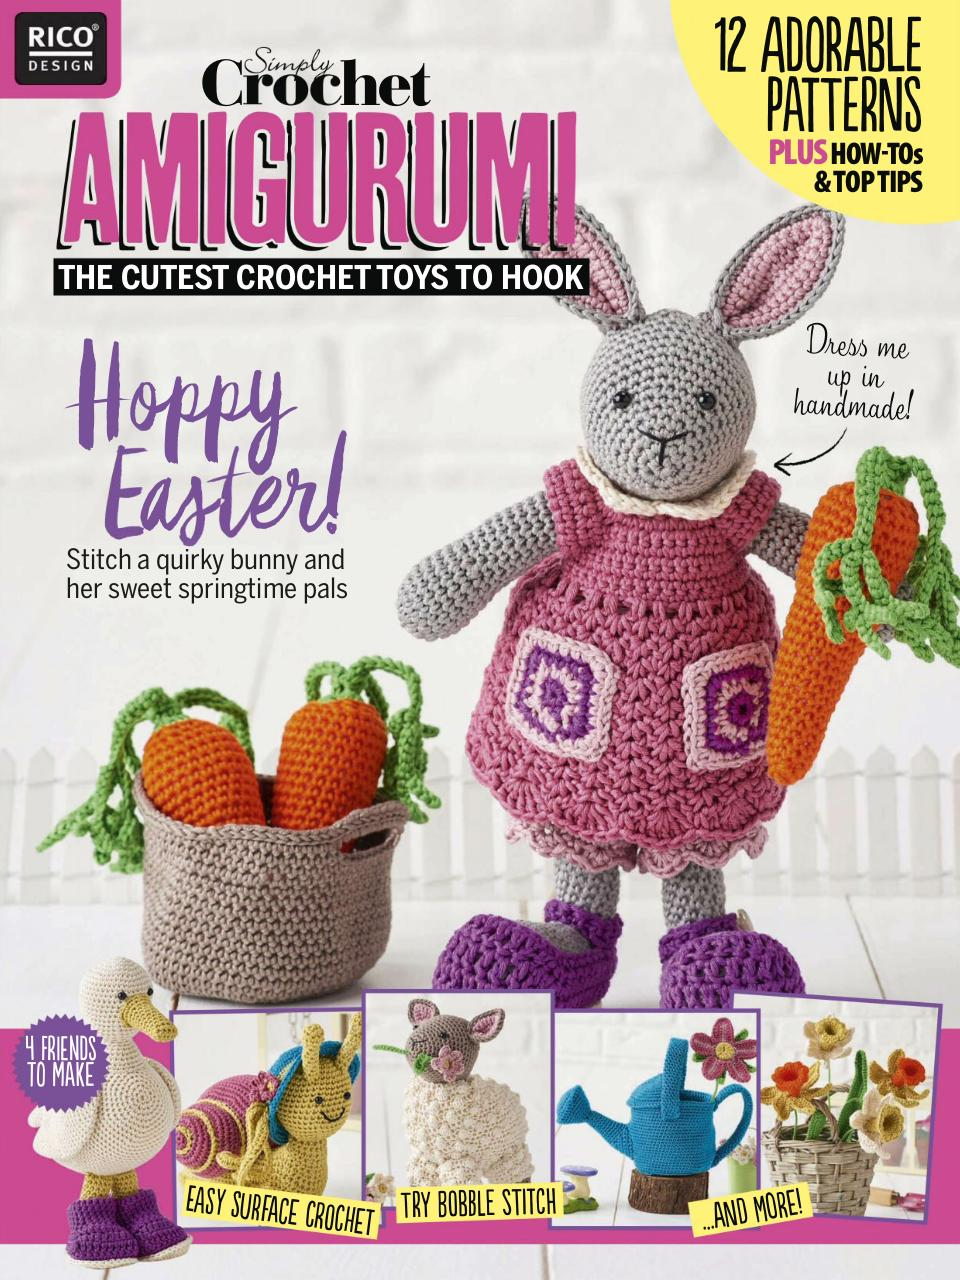 Amigurumi Stock Pictures, Royalty-free Photos & Images | 1024x768